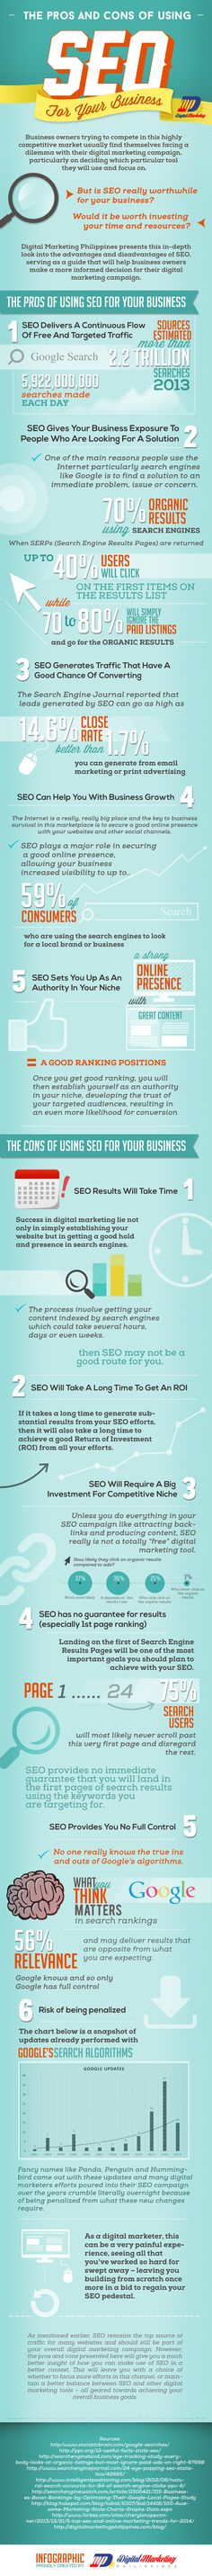 The-Pros-and-Cons-of-Using-SEO-for-Your-Business